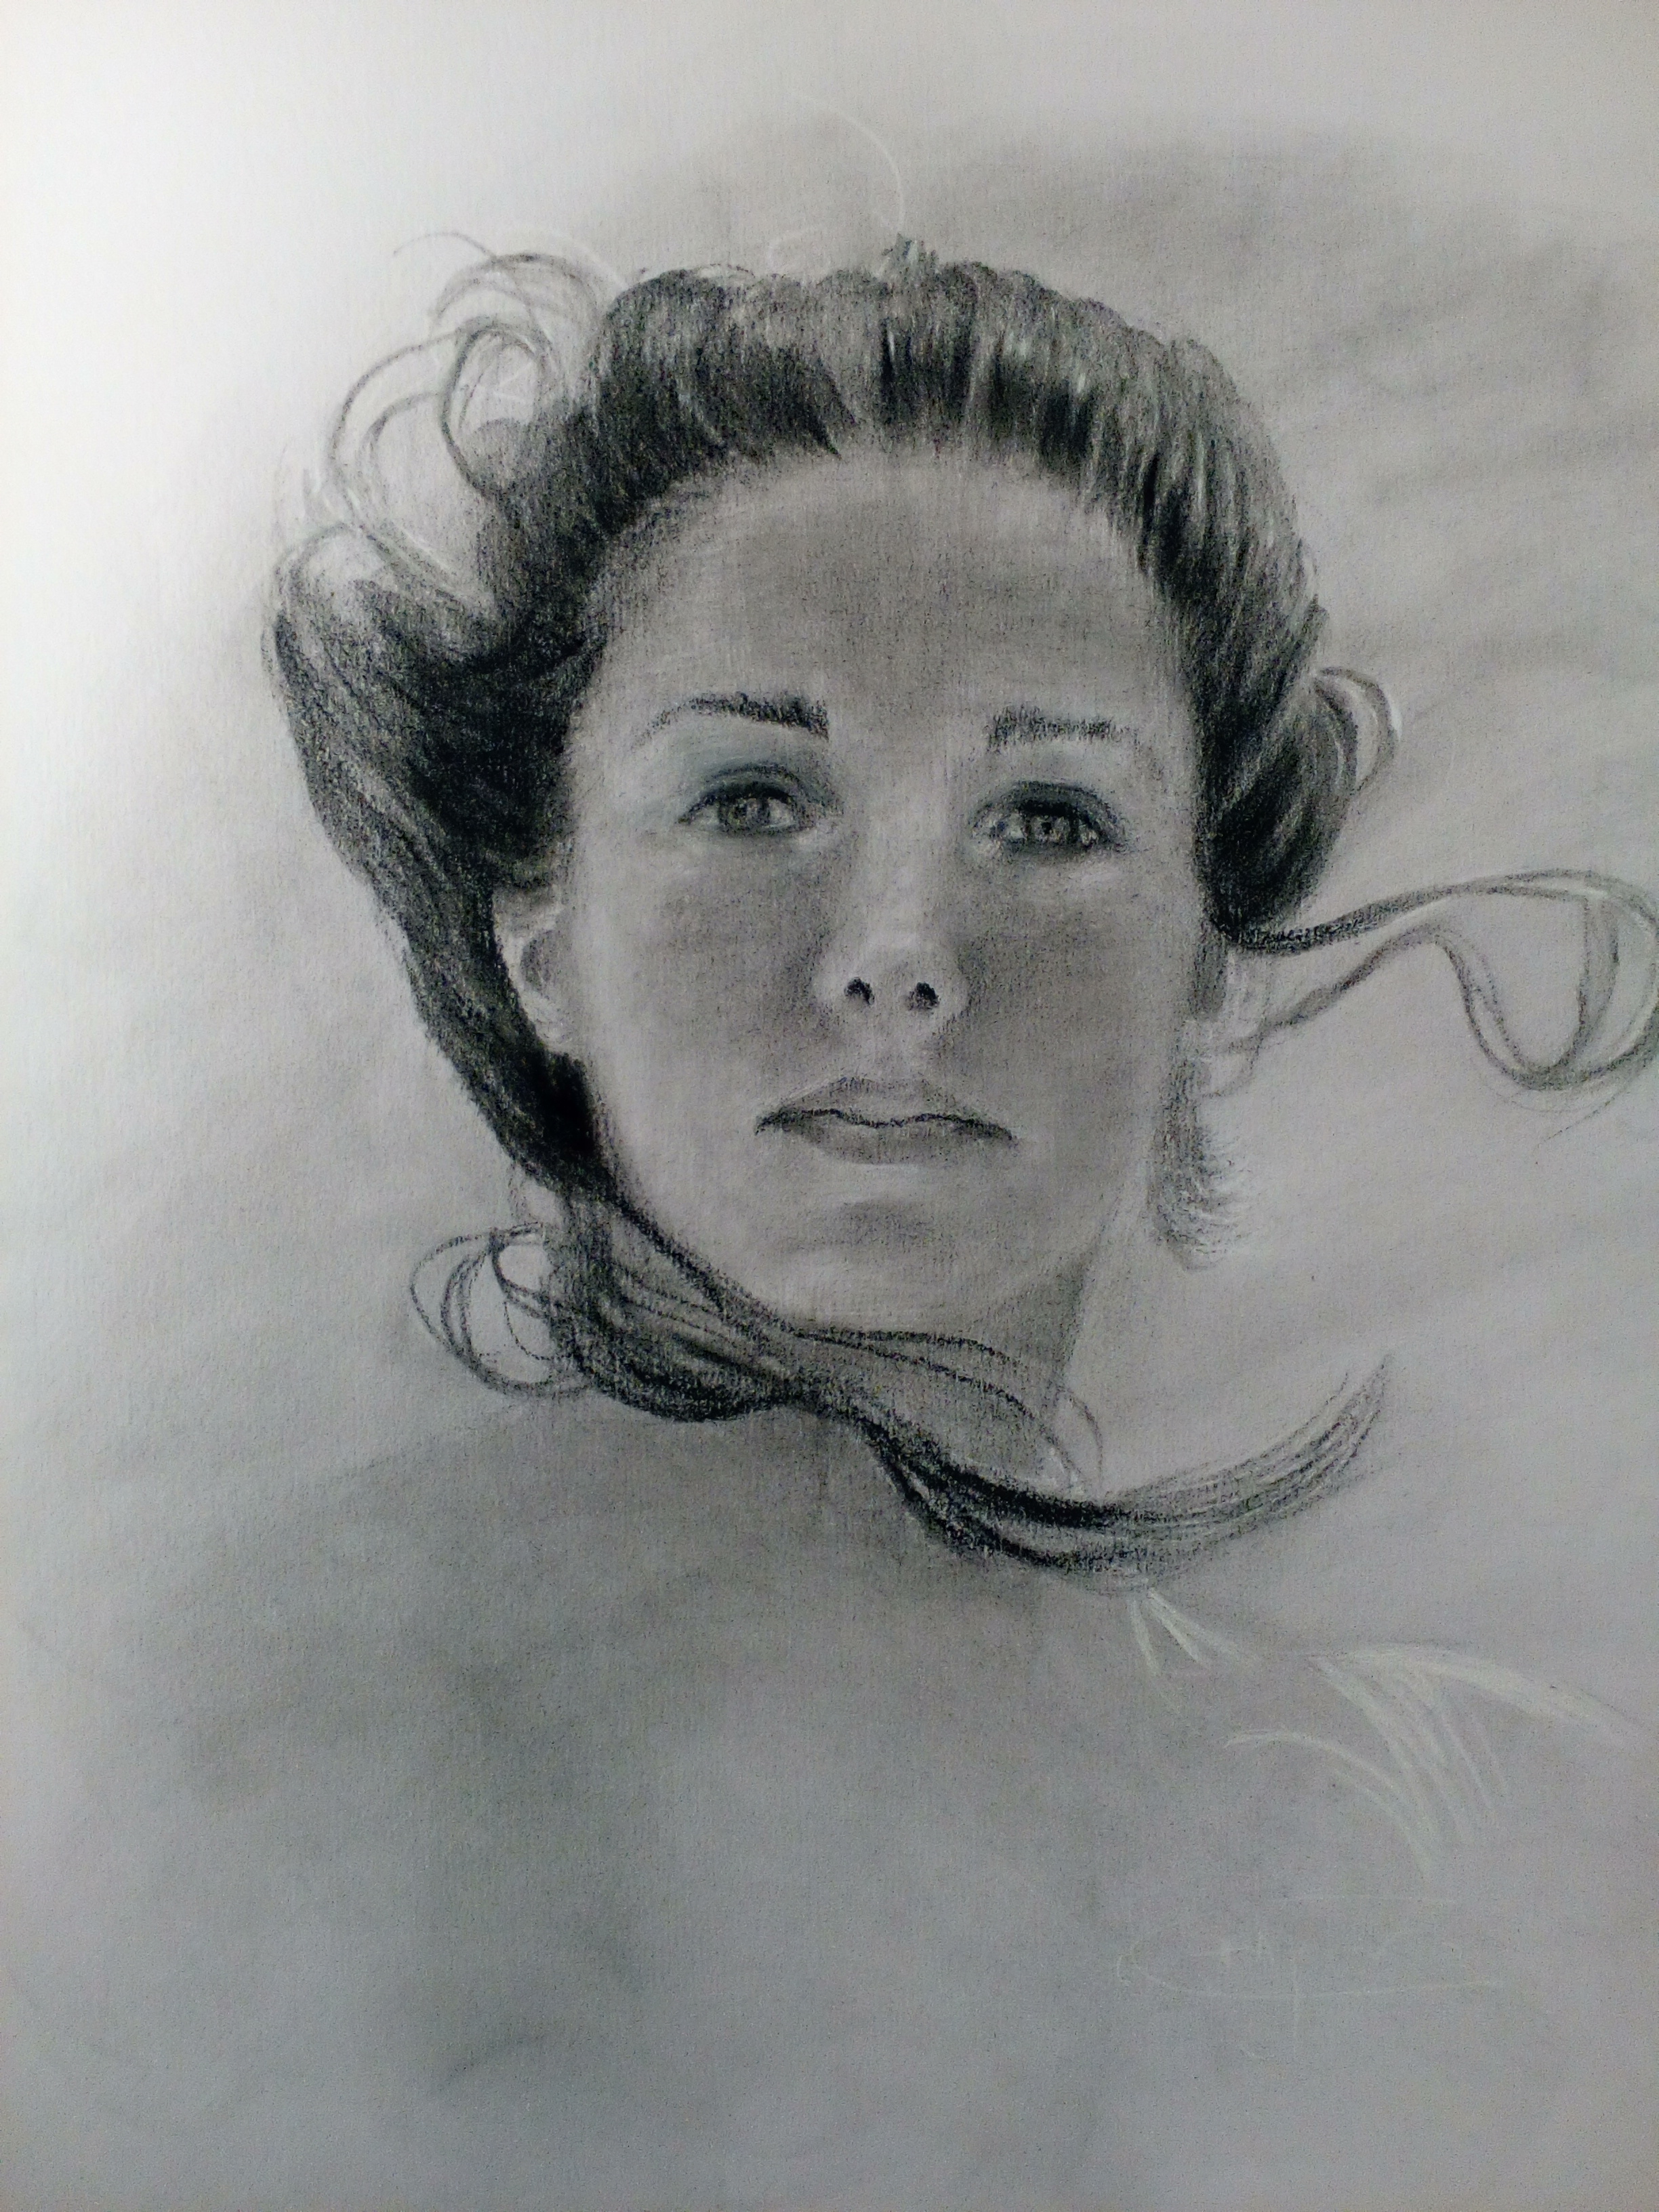 Charcoal Drawings, original drawings by Deborah Chapin